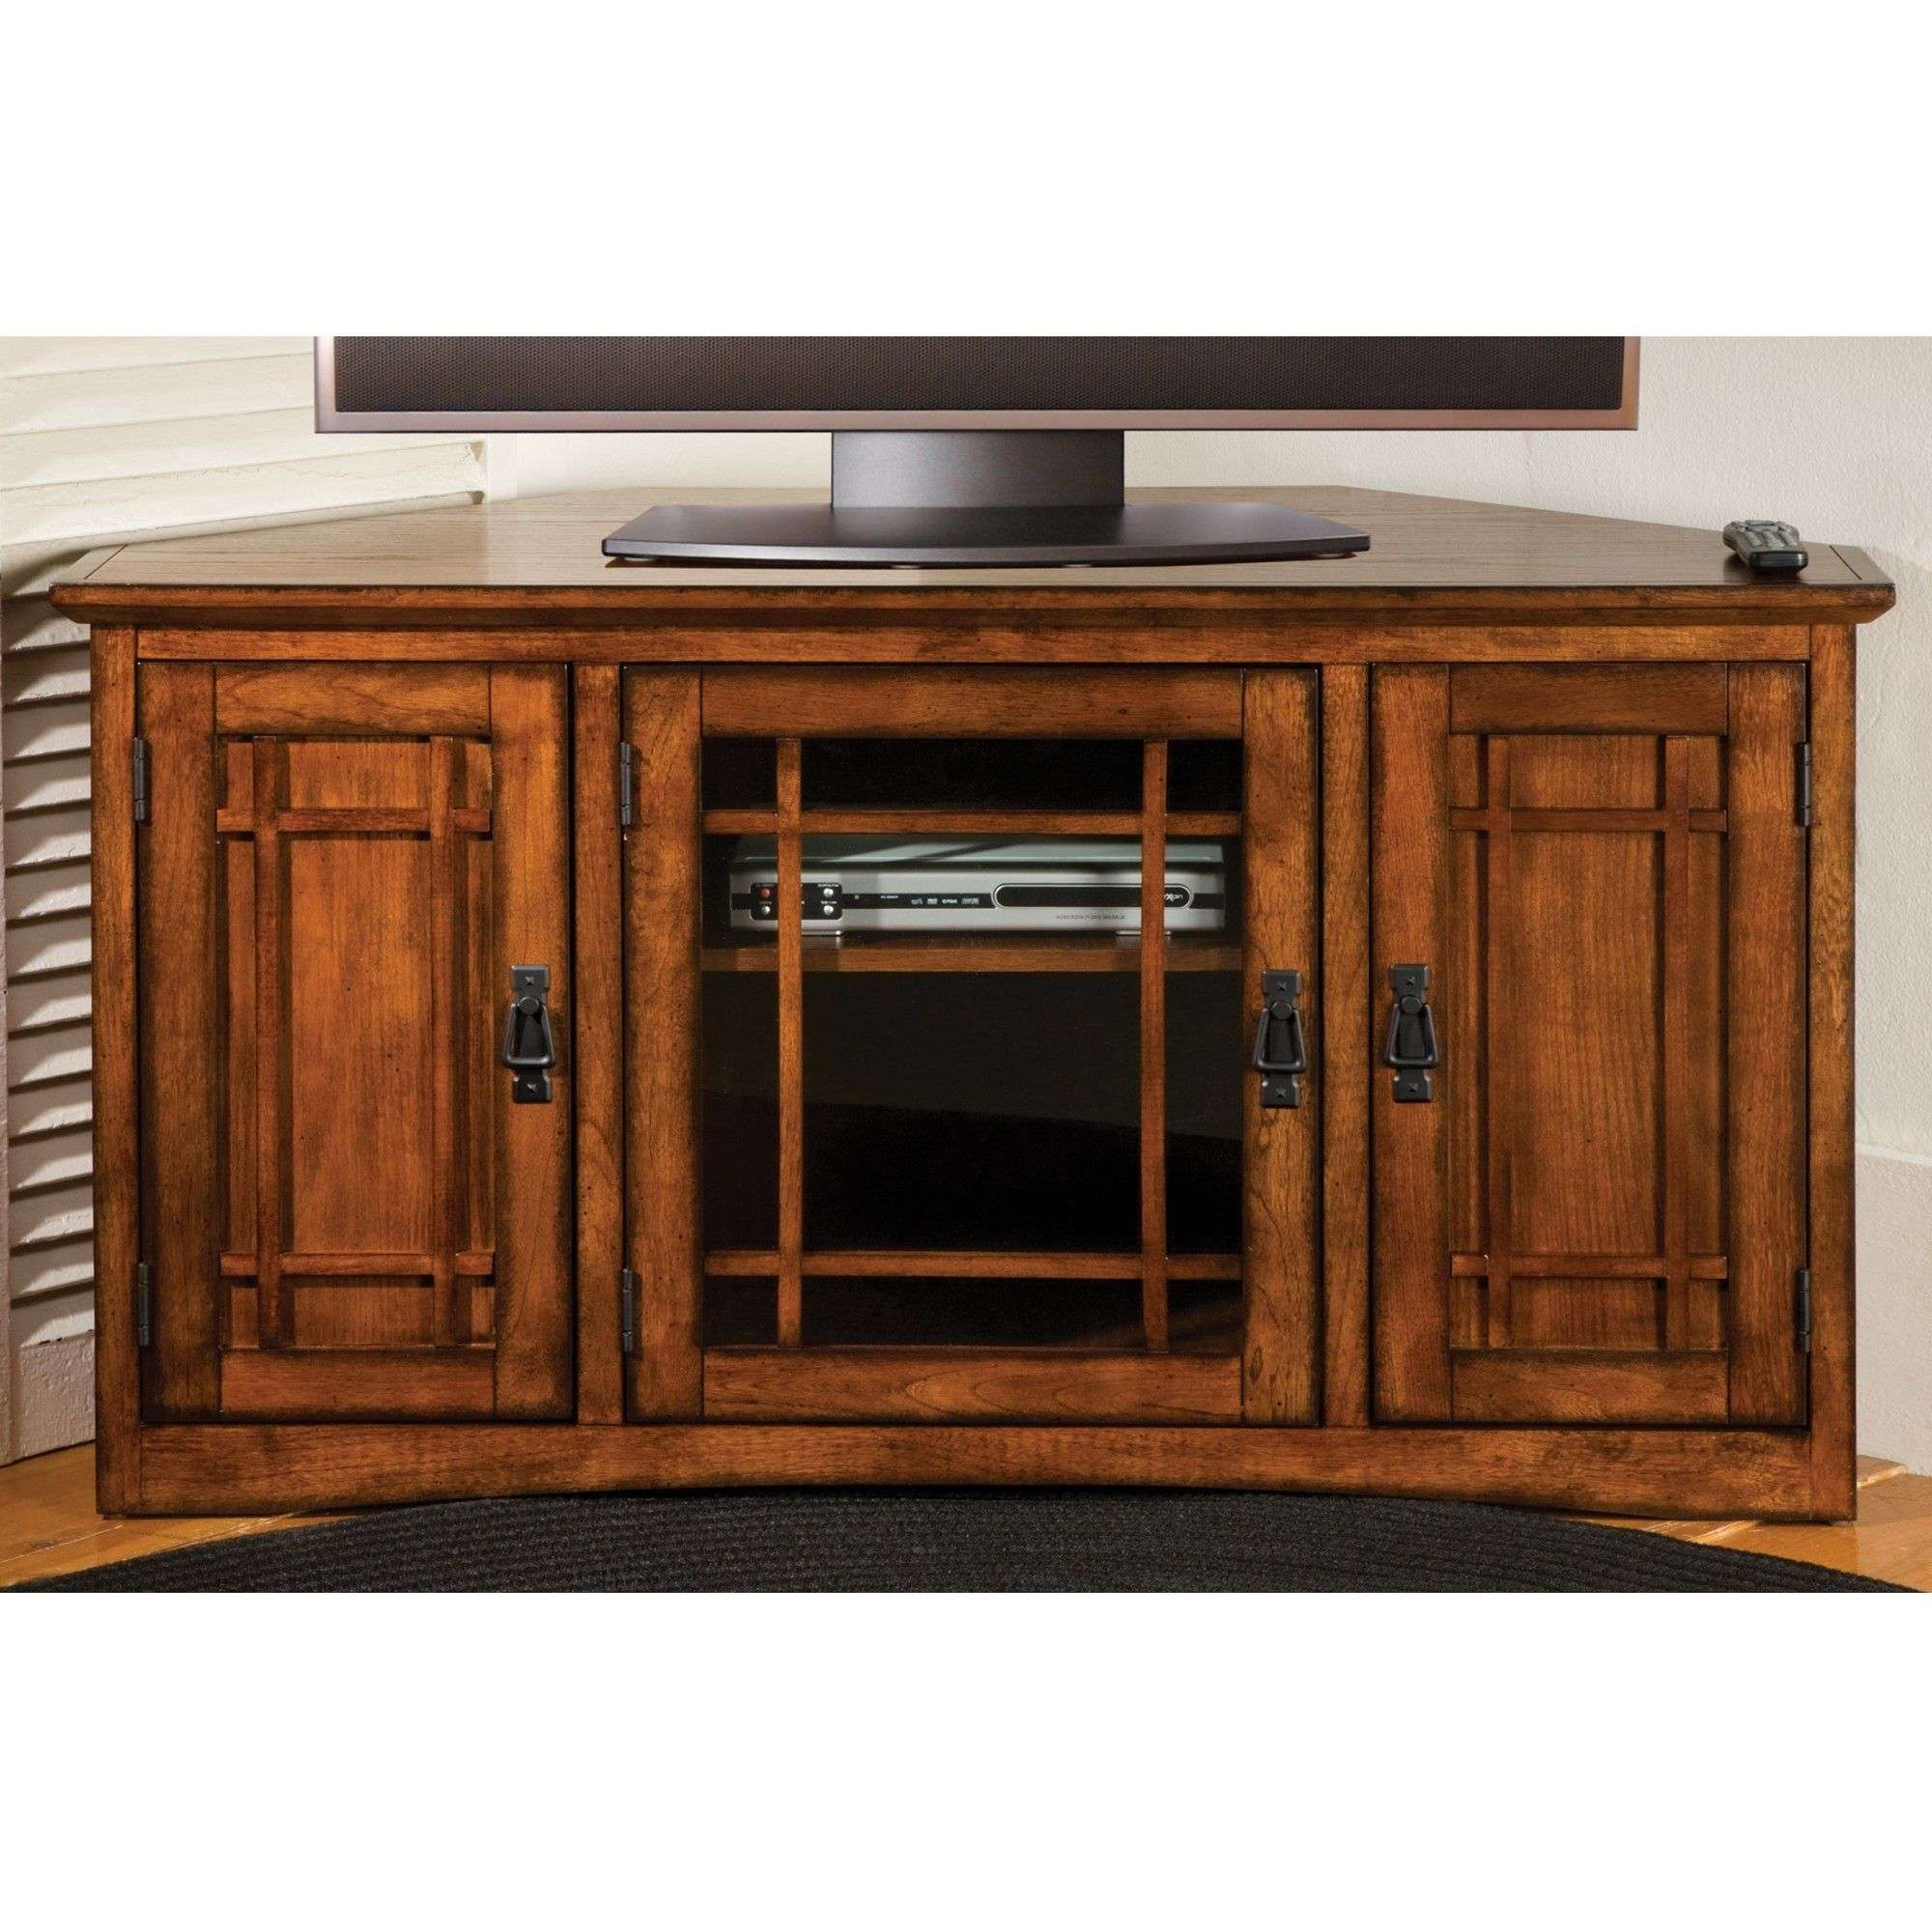 Wooden Corner Tv Cabinets For Flat Screens | Best Home Furniture Pertaining To Corner Tv Cabinets For Flat Screens With Doors (View 12 of 20)